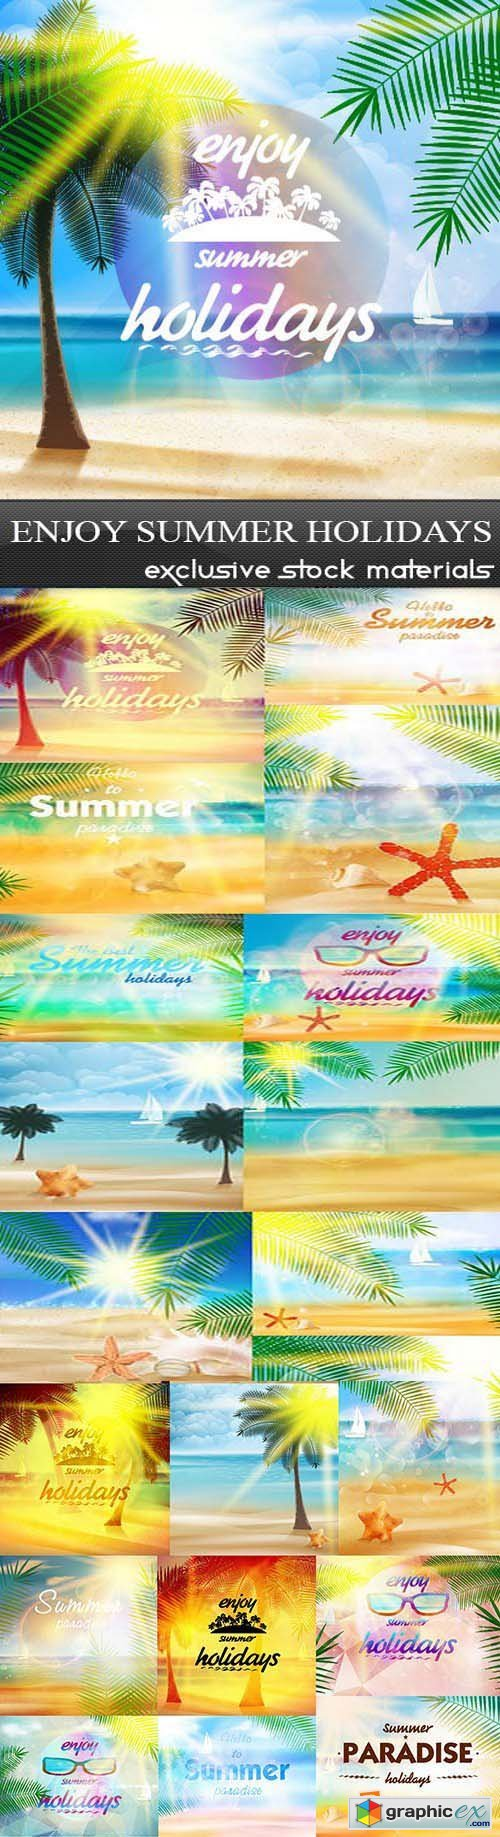 Enjoy Summer Holidays, 25xEPS